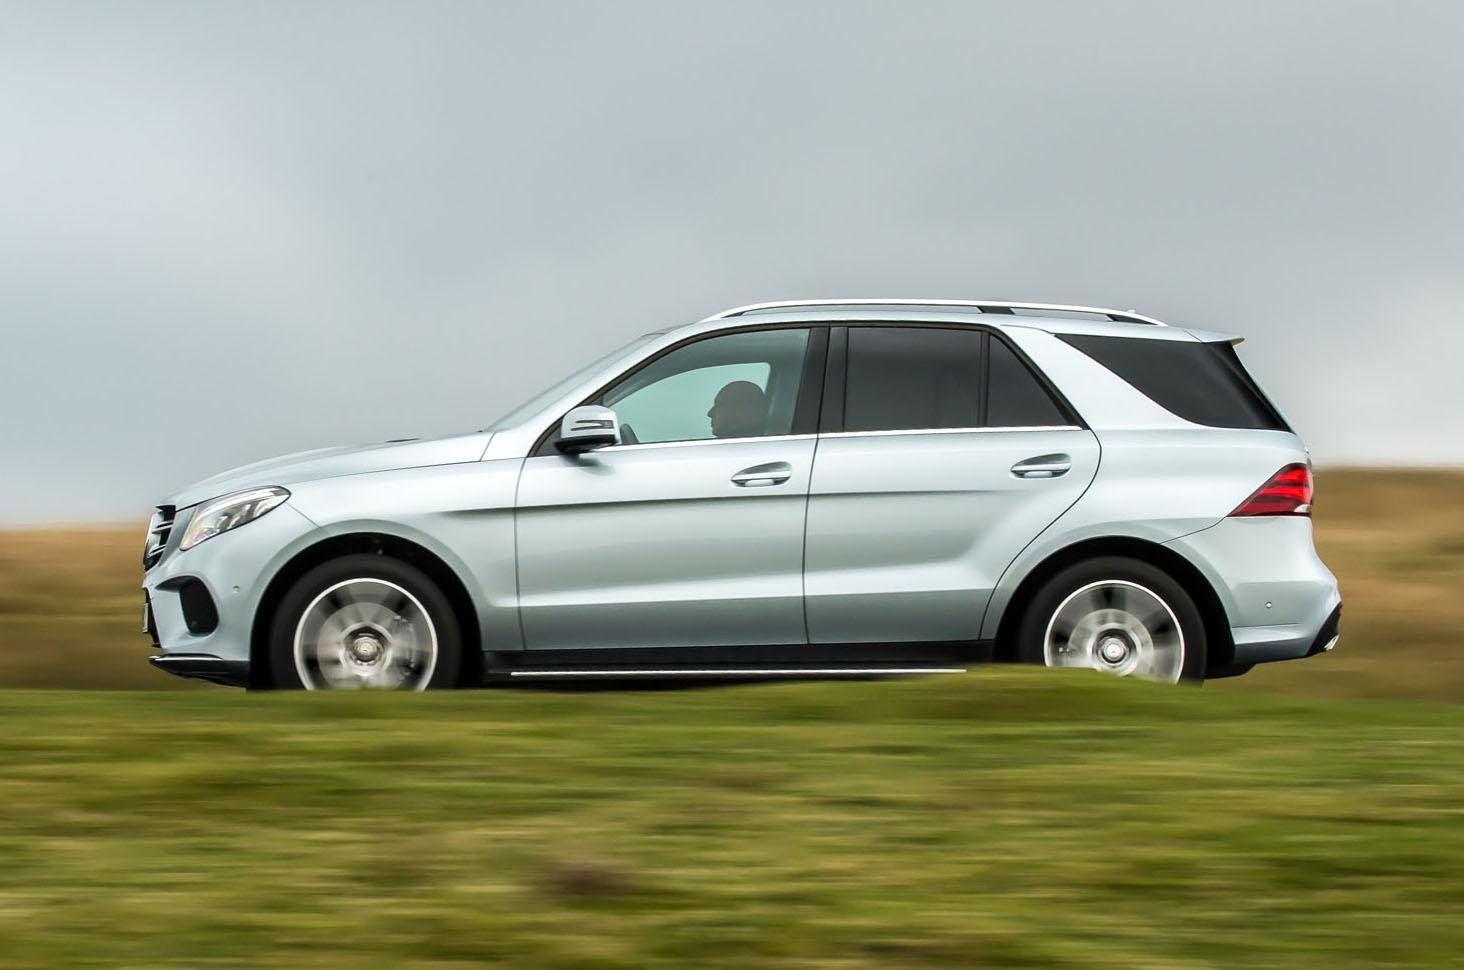 Used Mercedes GLE (15-present)